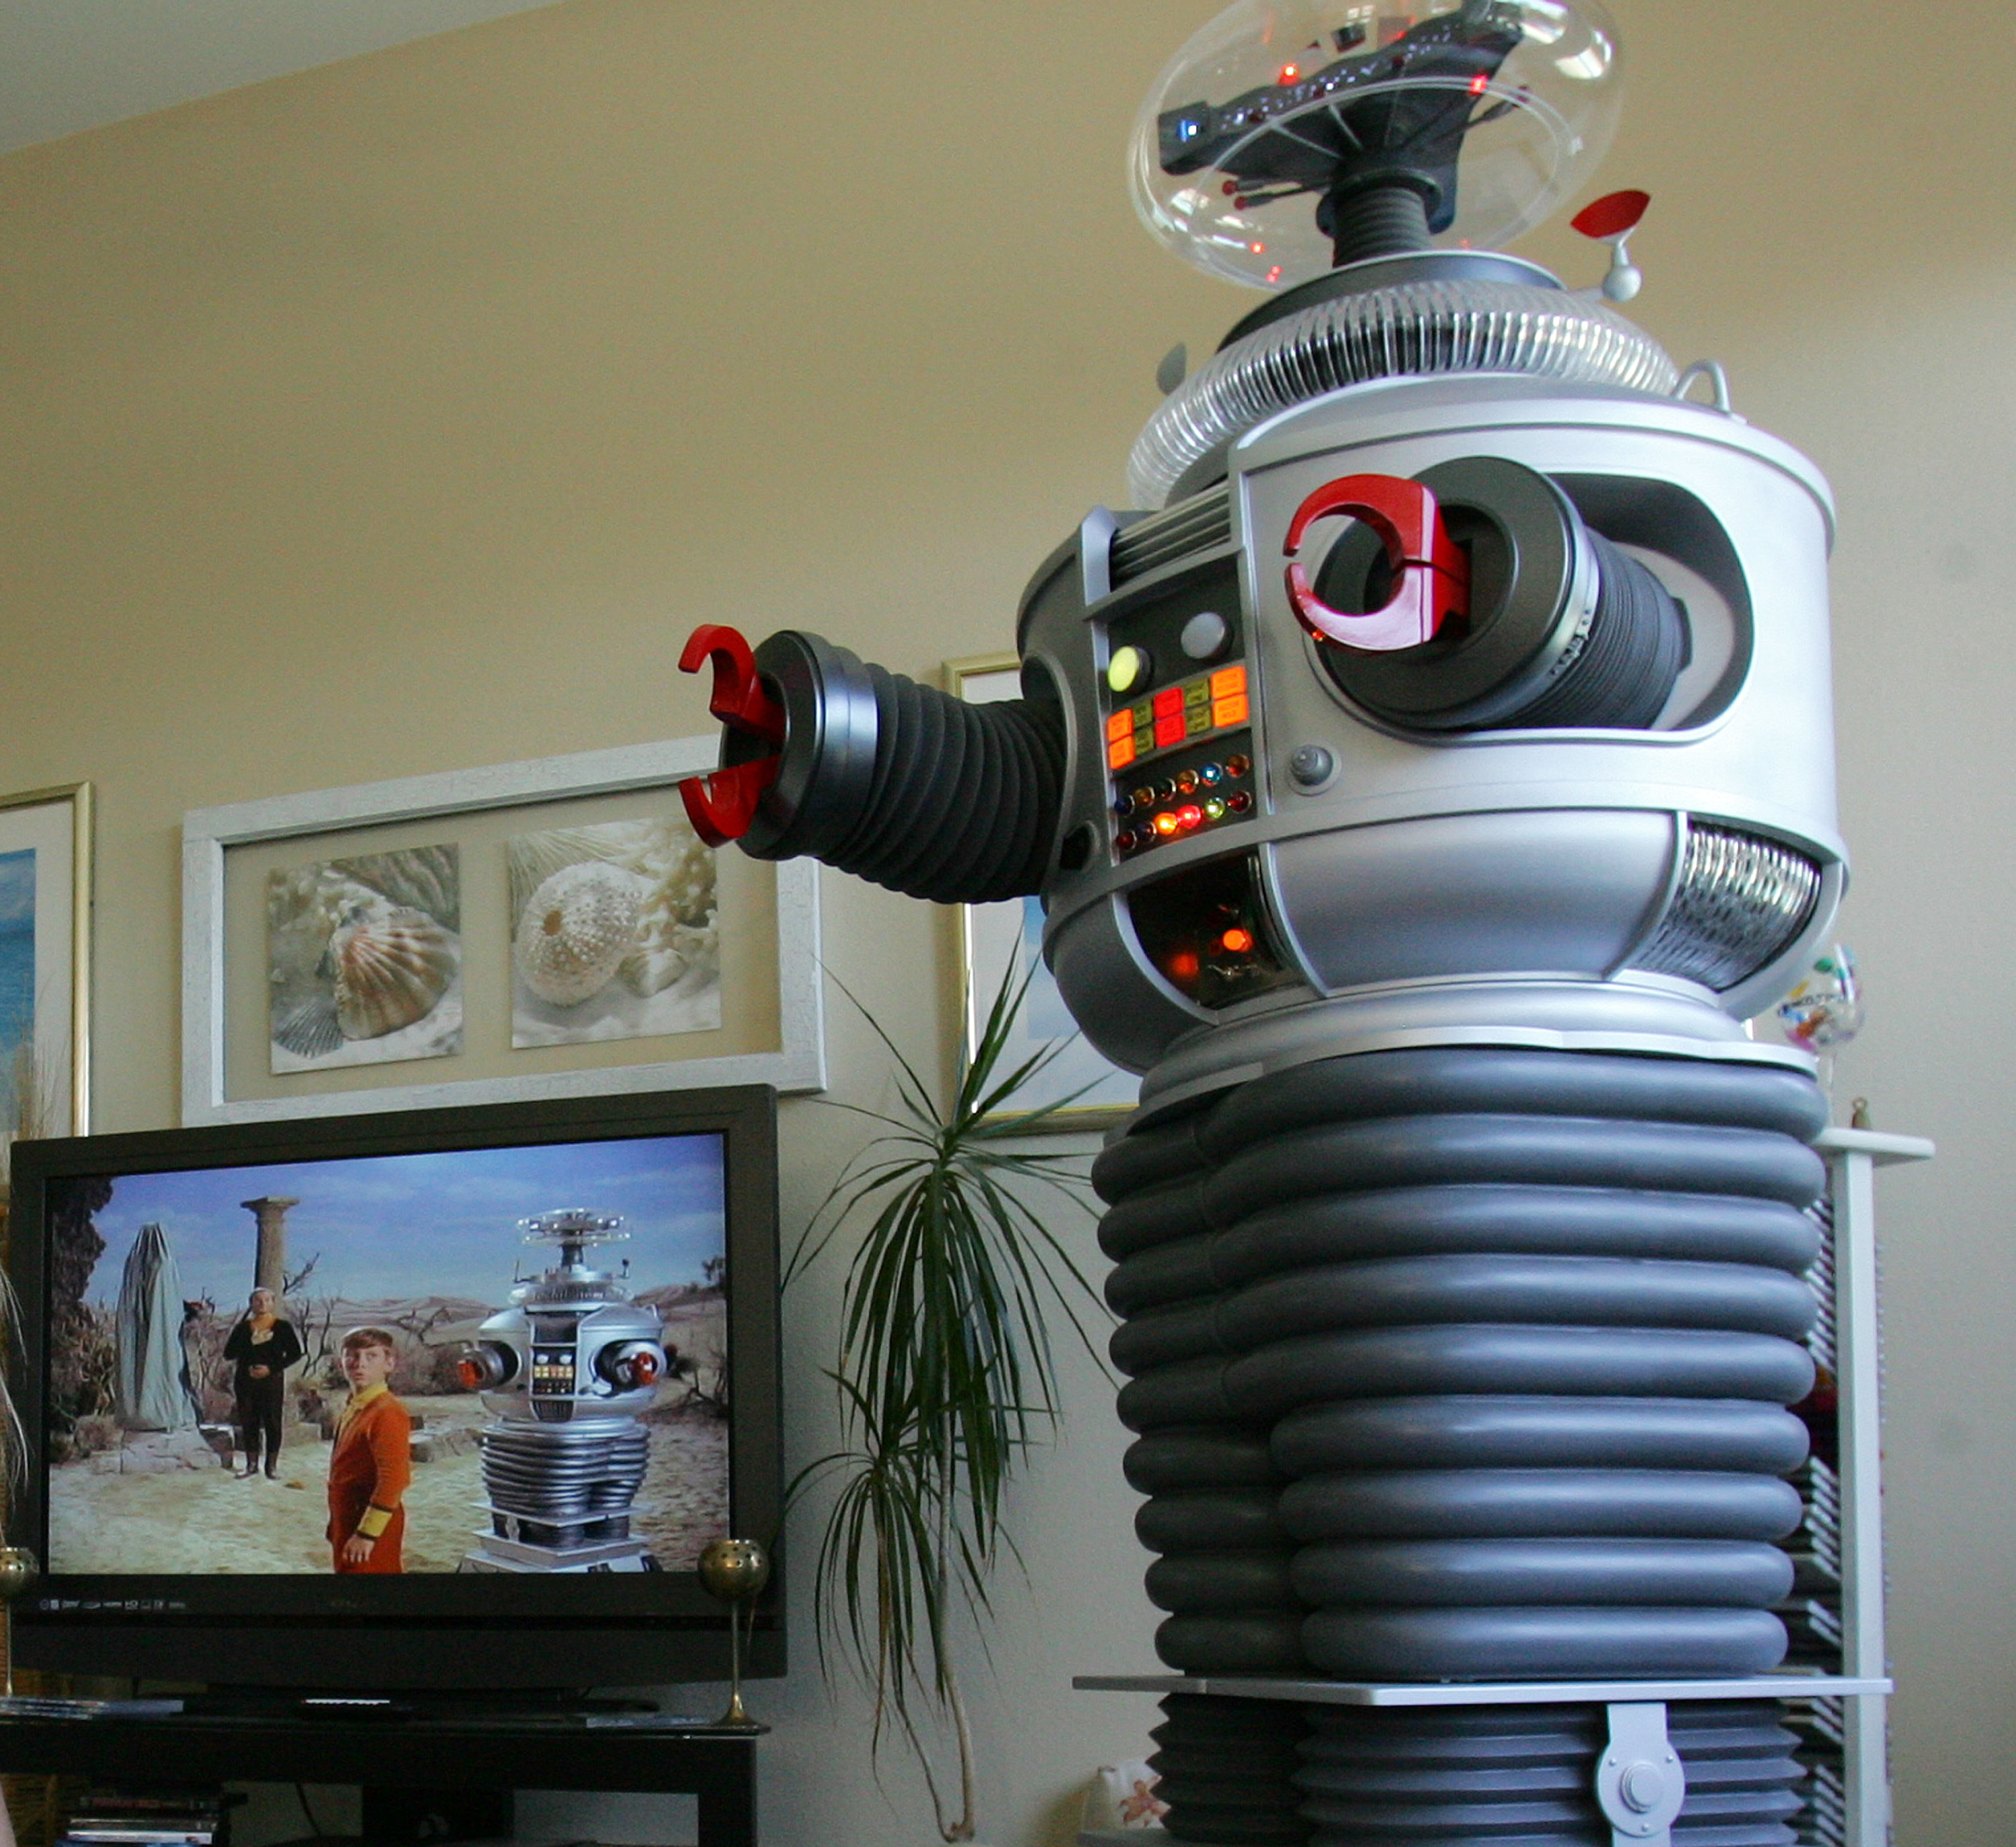 A life size replica of the original Lost in Space Robot created by Tom Boothe (Getty, JG)